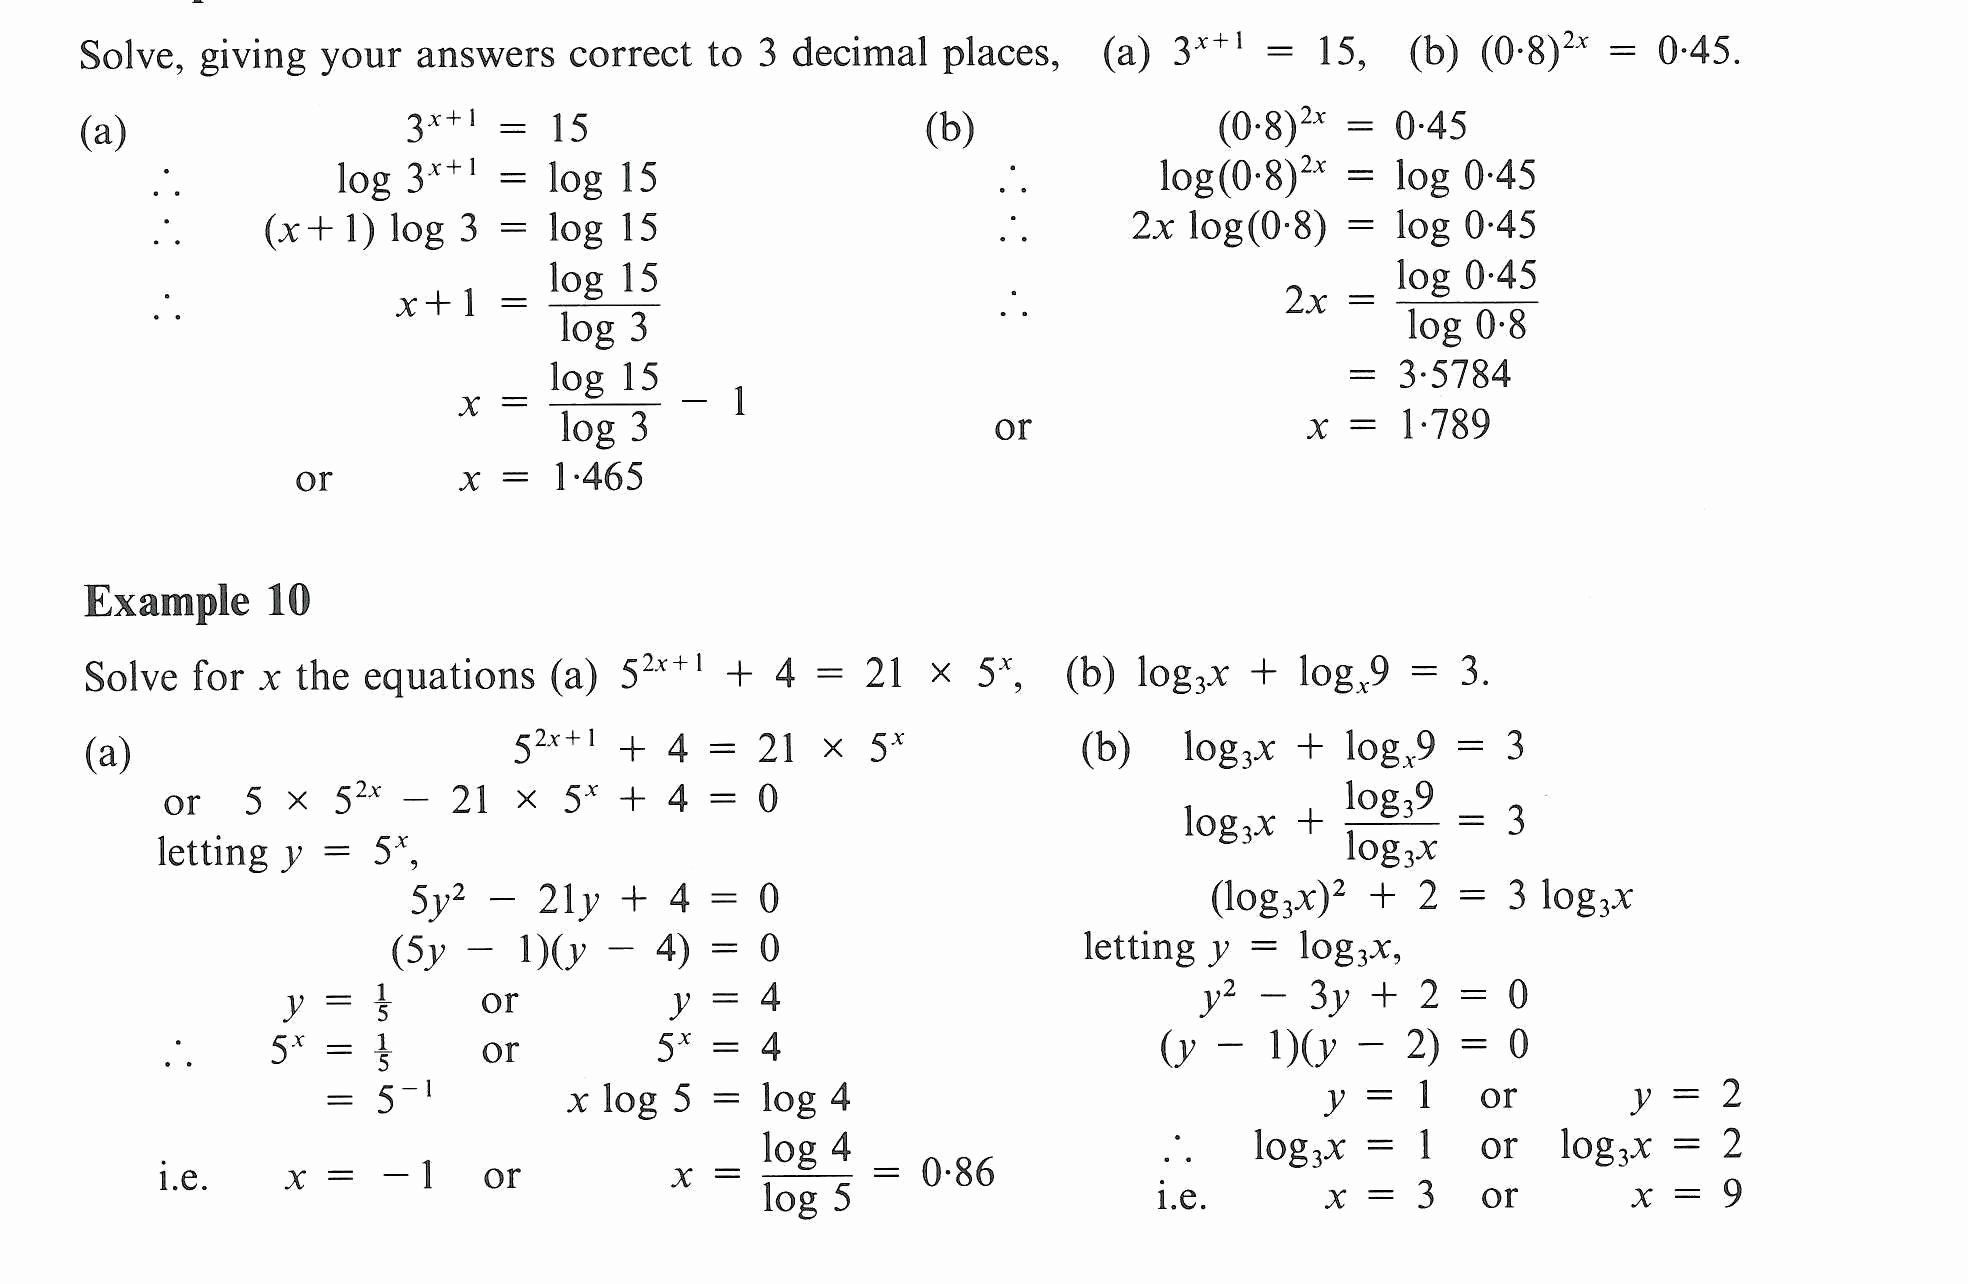 medium resolution of Geometric Sequence Worksheet Answers Best Of Geometric Sequences and Series  Worksheet…   Persuasive writing prompts